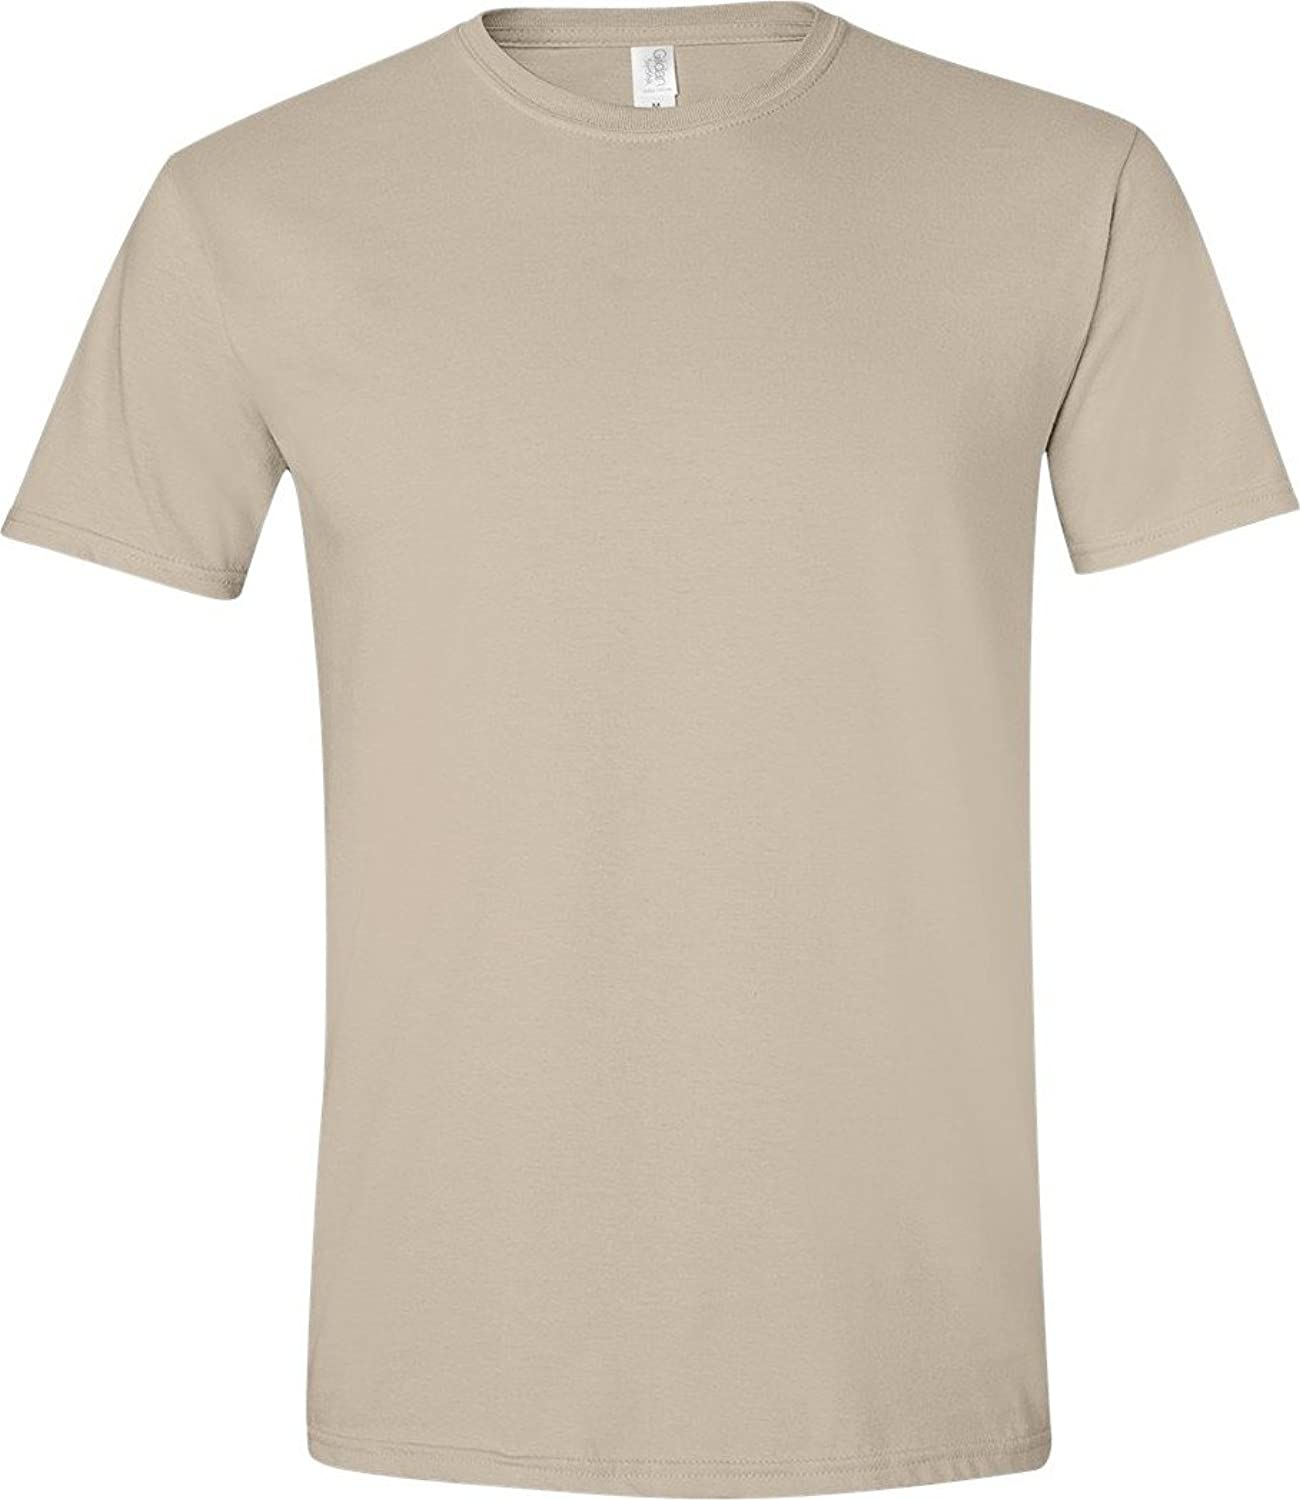 Gildan Men's SoftStyle Fashion Double-Needle T-Shirt, Sand, XX-Large